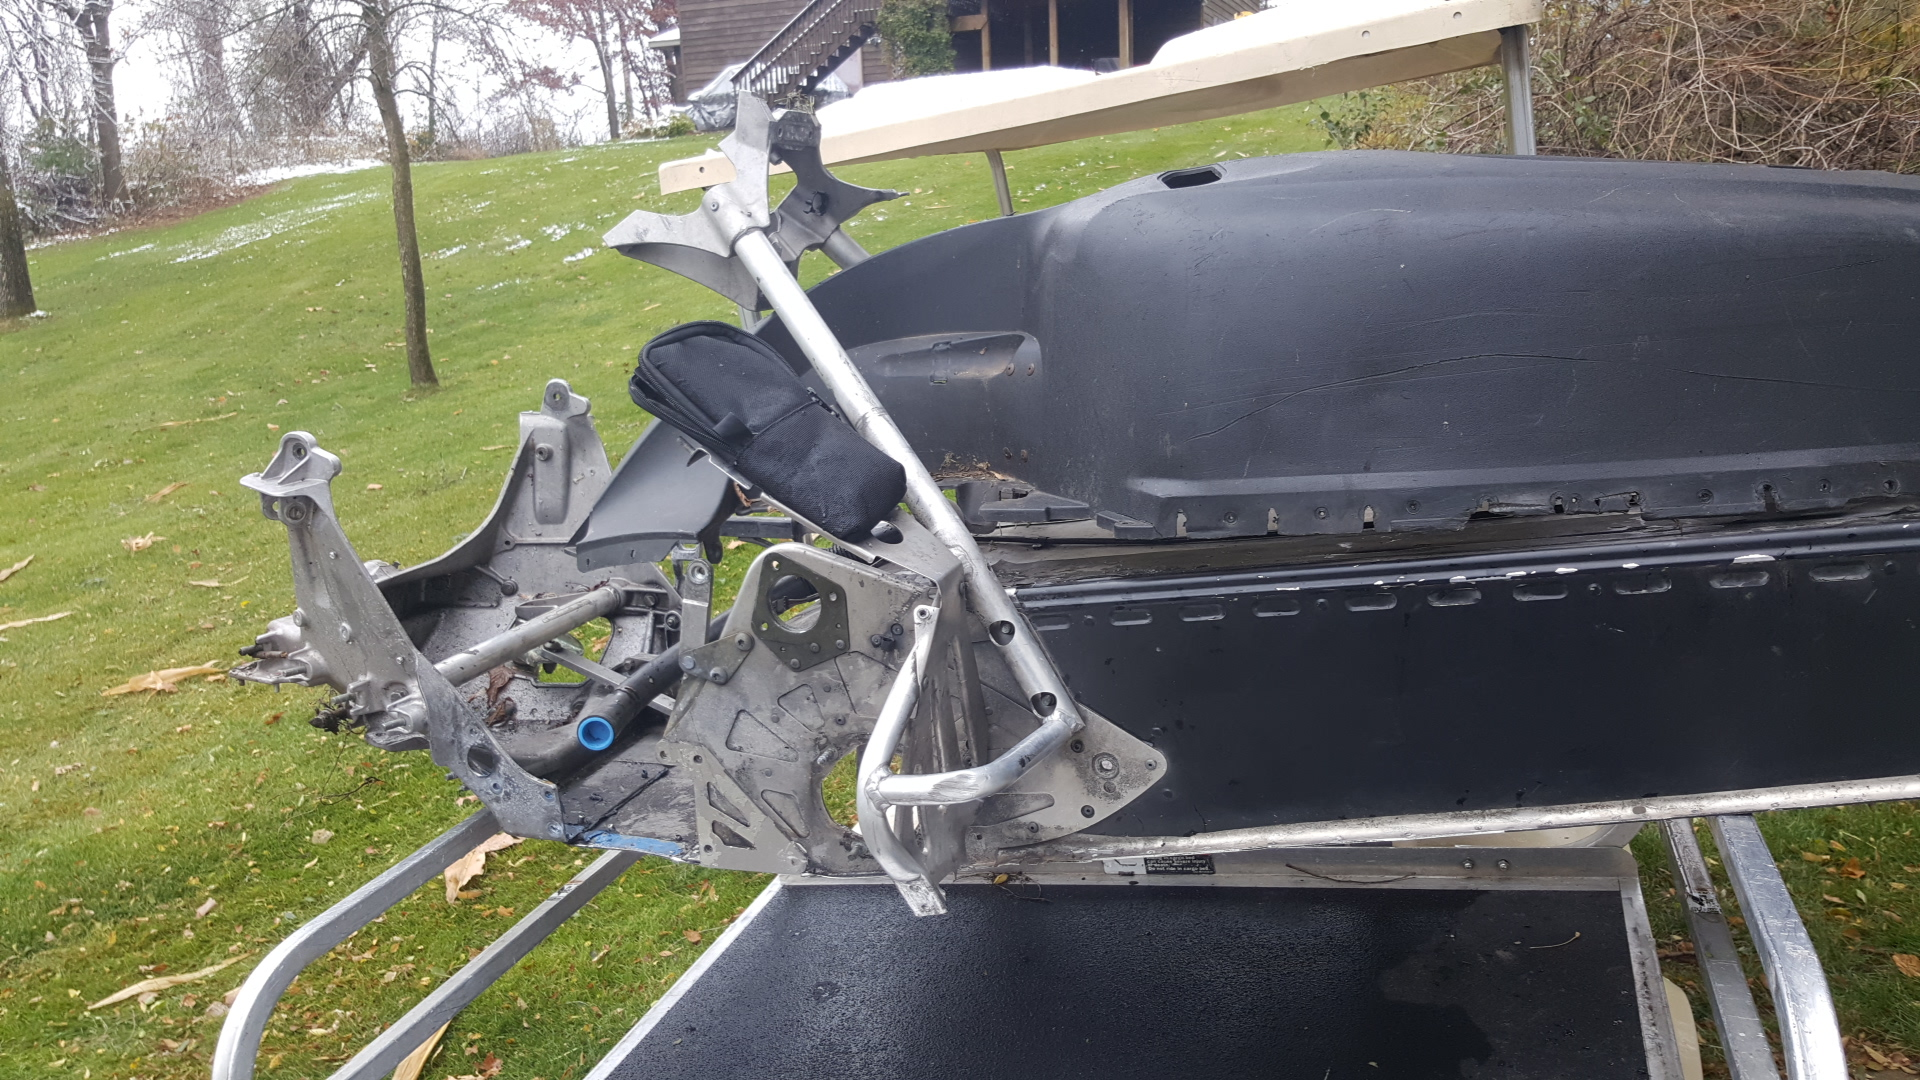 Parts available from 2012 Polaris RMK 800